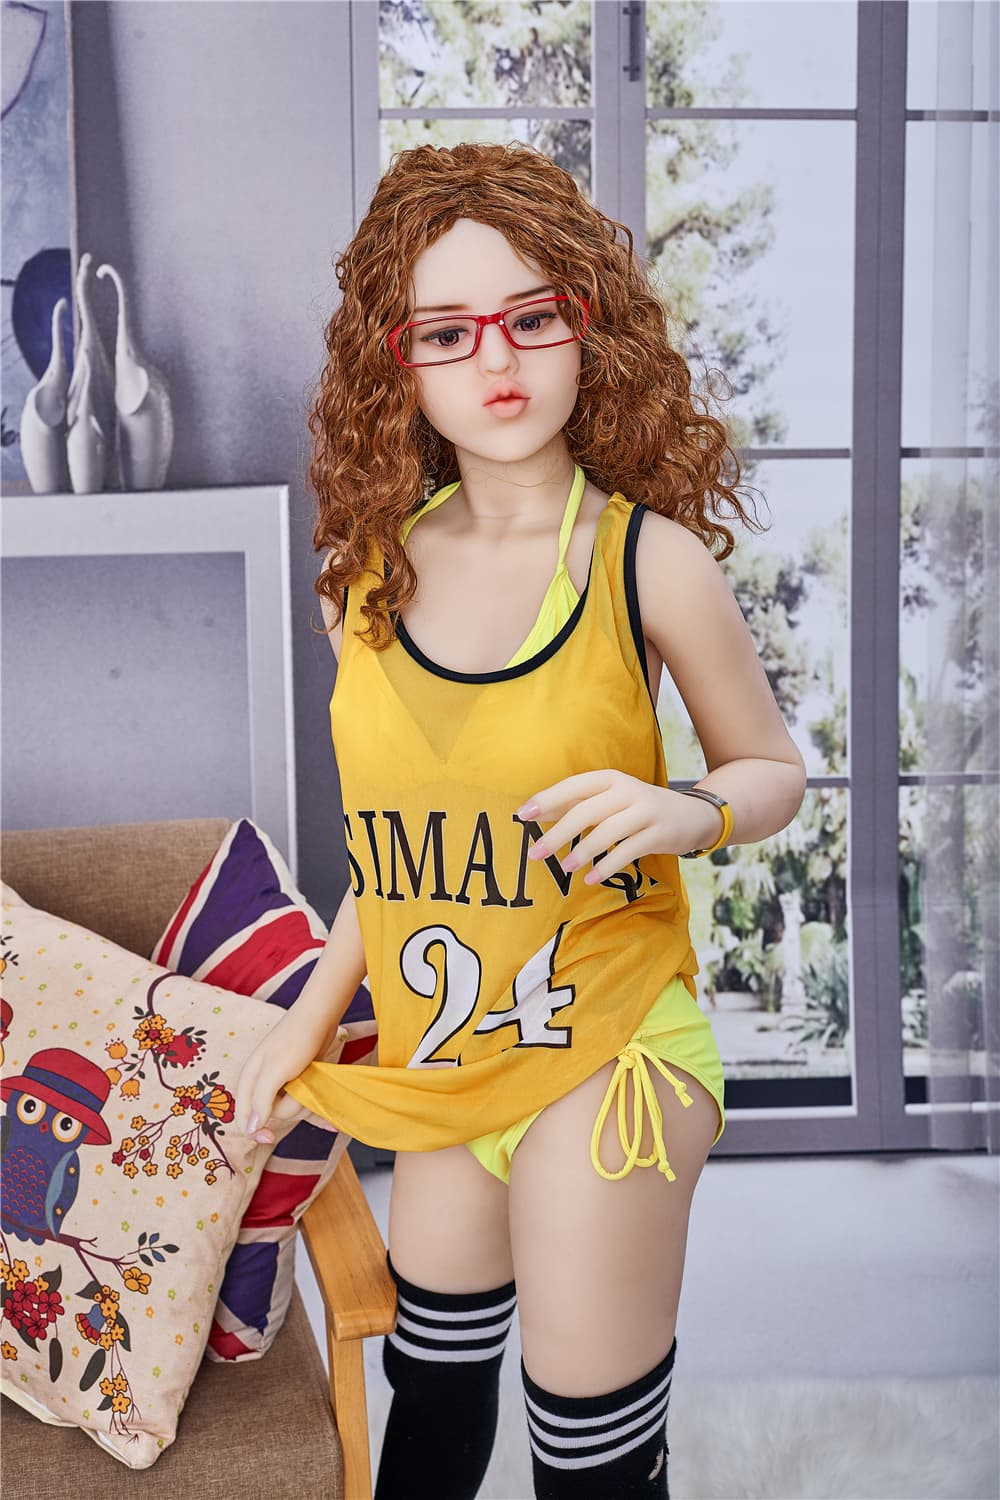 miley 145cm medium tits skinny red hair tpe small teen sex doll(4)